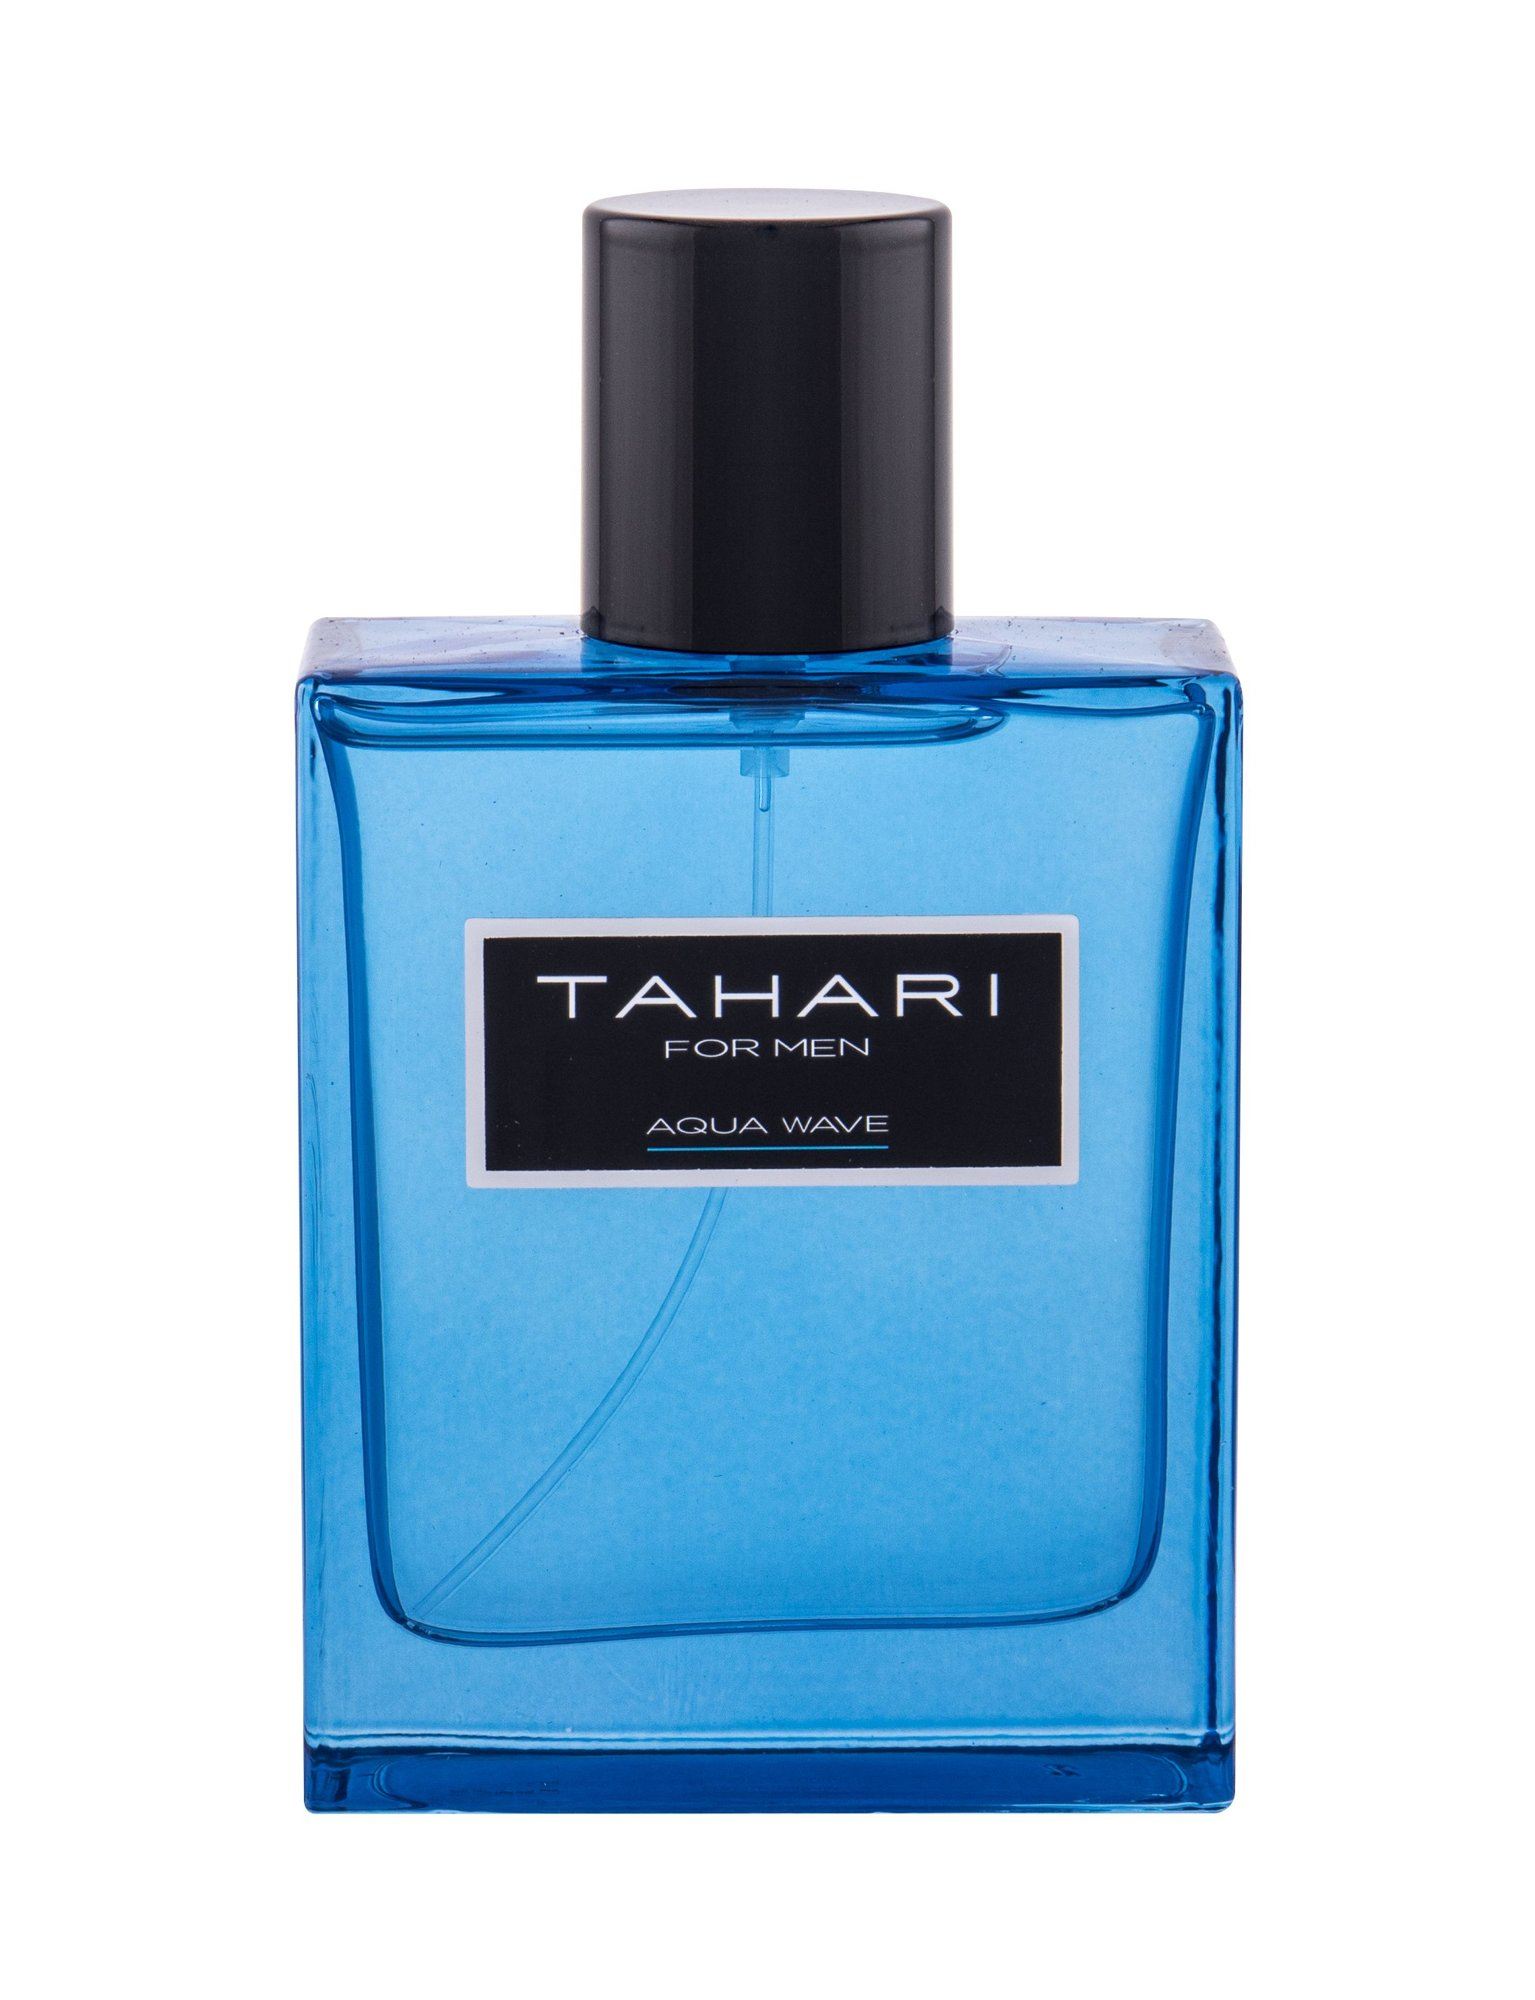 Tahari Aqua Wave, edt 100ml